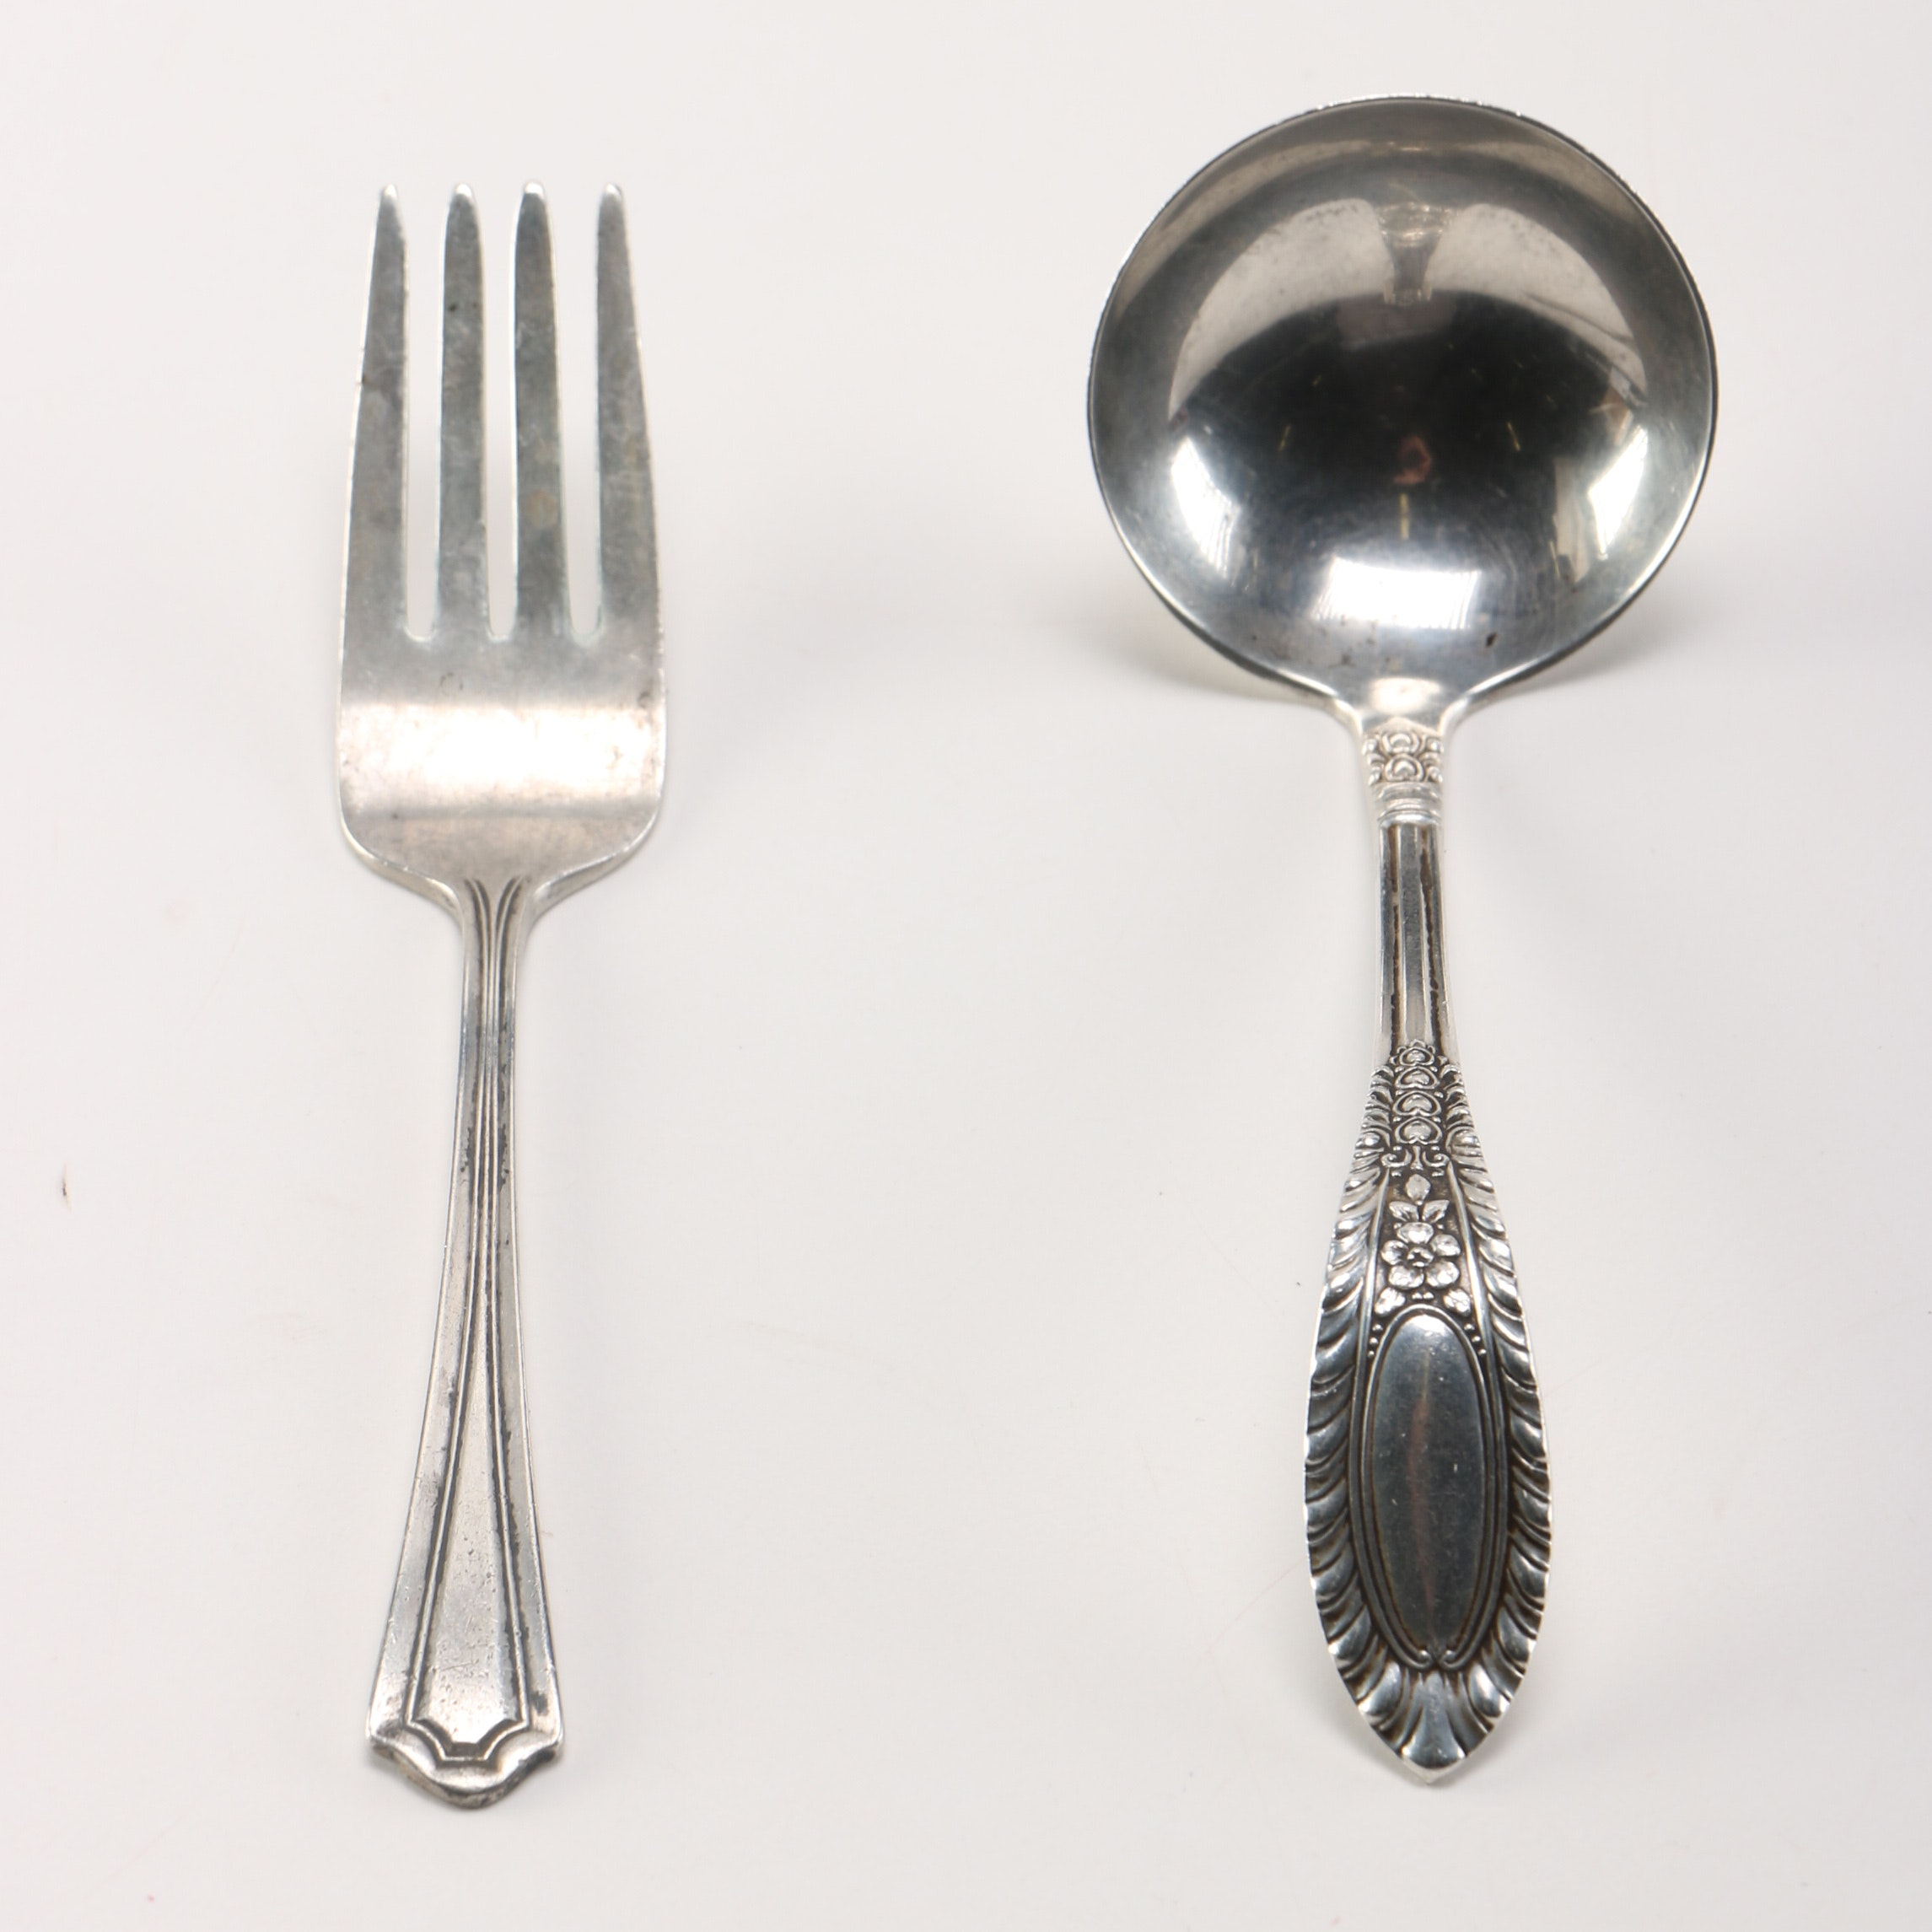 Manchester Silver Co. Sterling Silver Serving Utensils